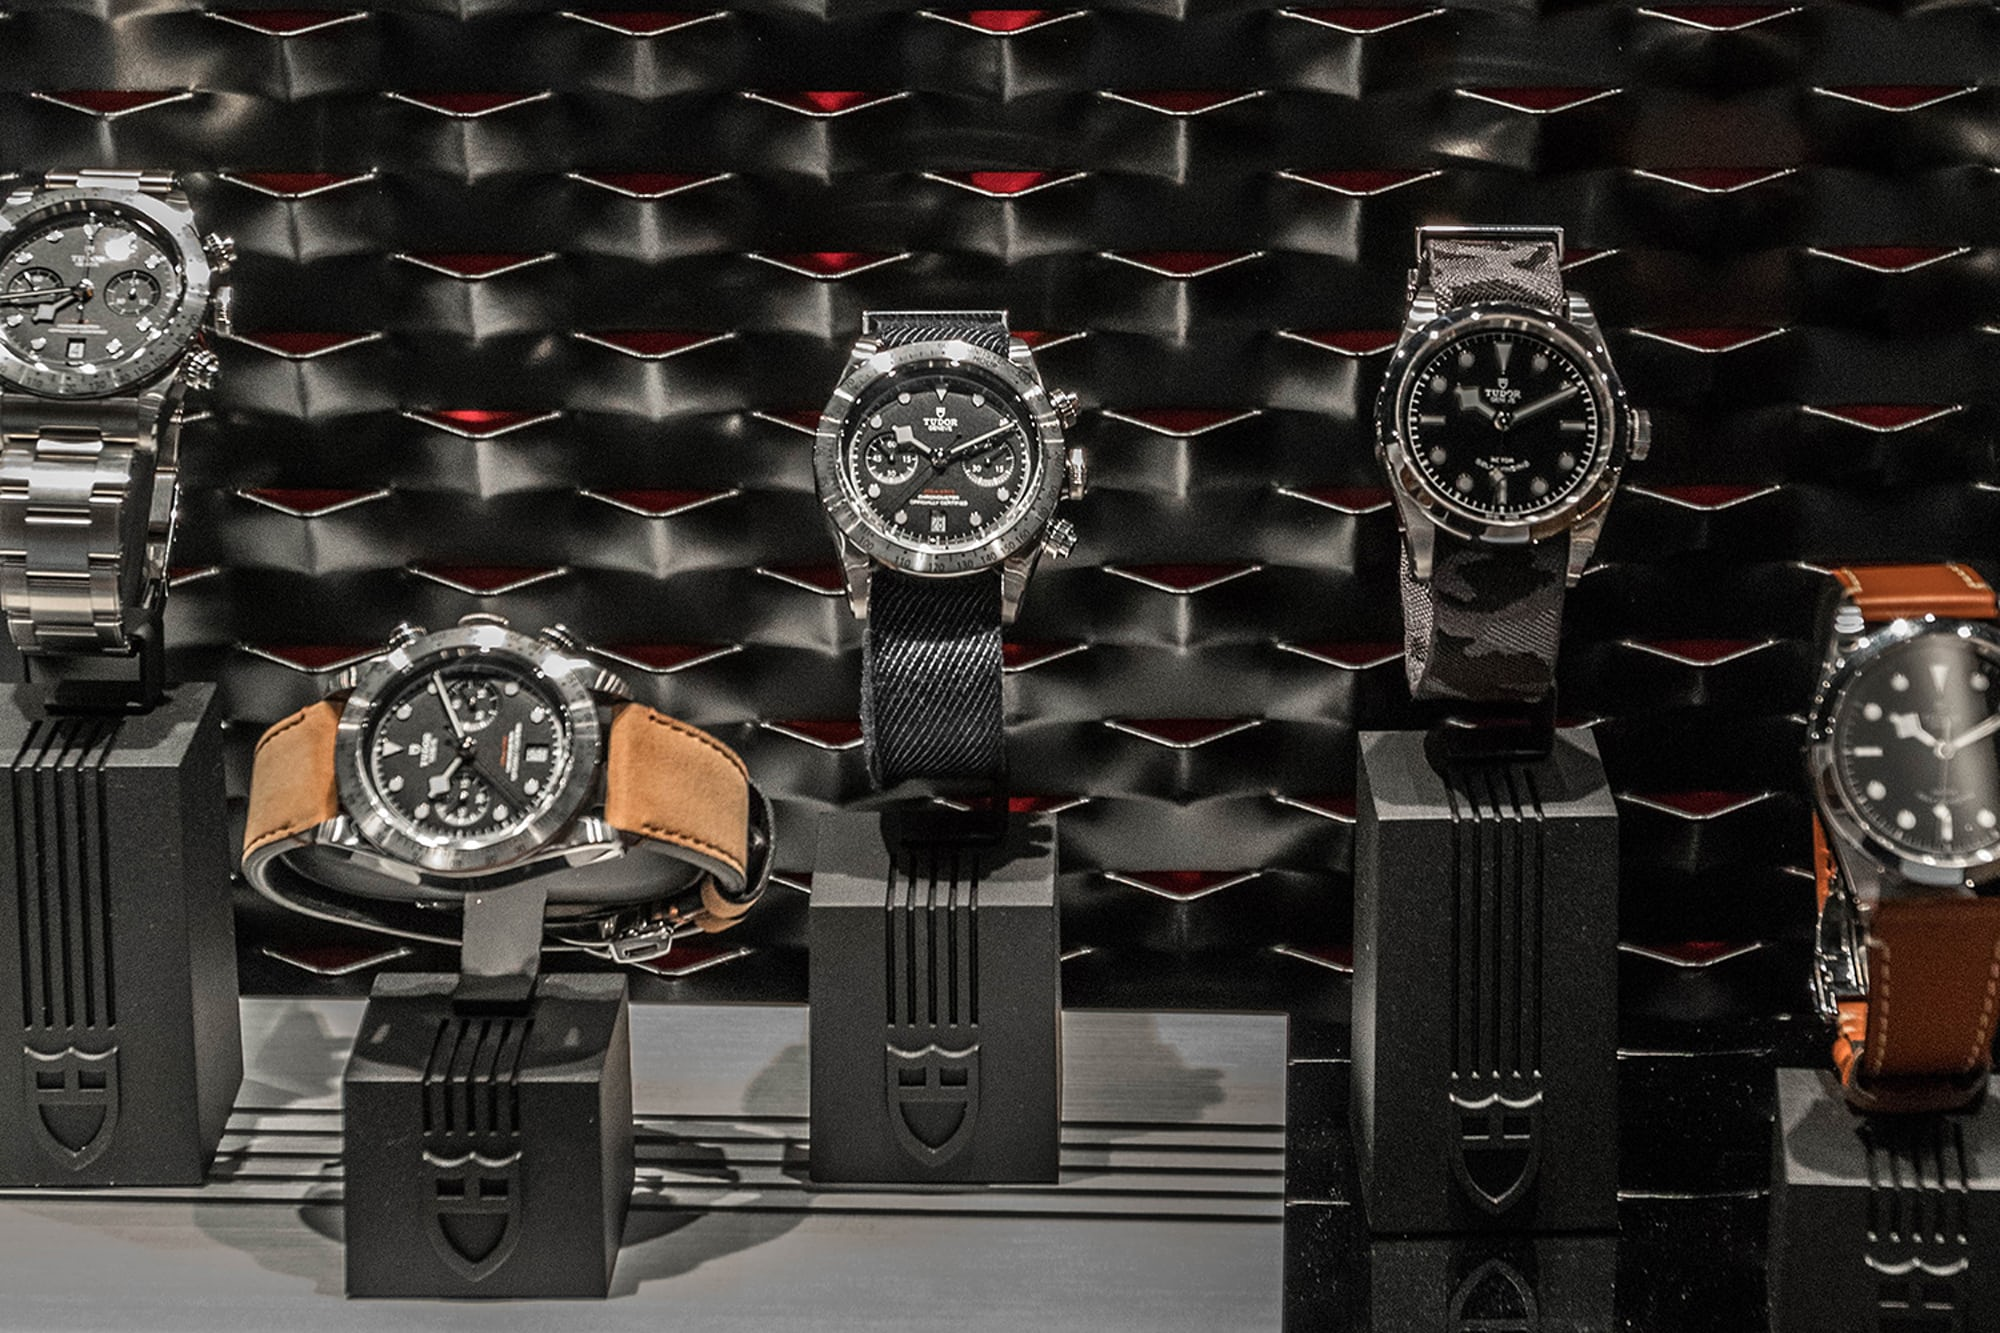 Photo Report: The Tudor Baselworld Novelties At Swiss Fine Timing In Chicago Photo Report: The Tudor Baselworld Novelties At Swiss Fine Timing In Chicago  Watches only 6